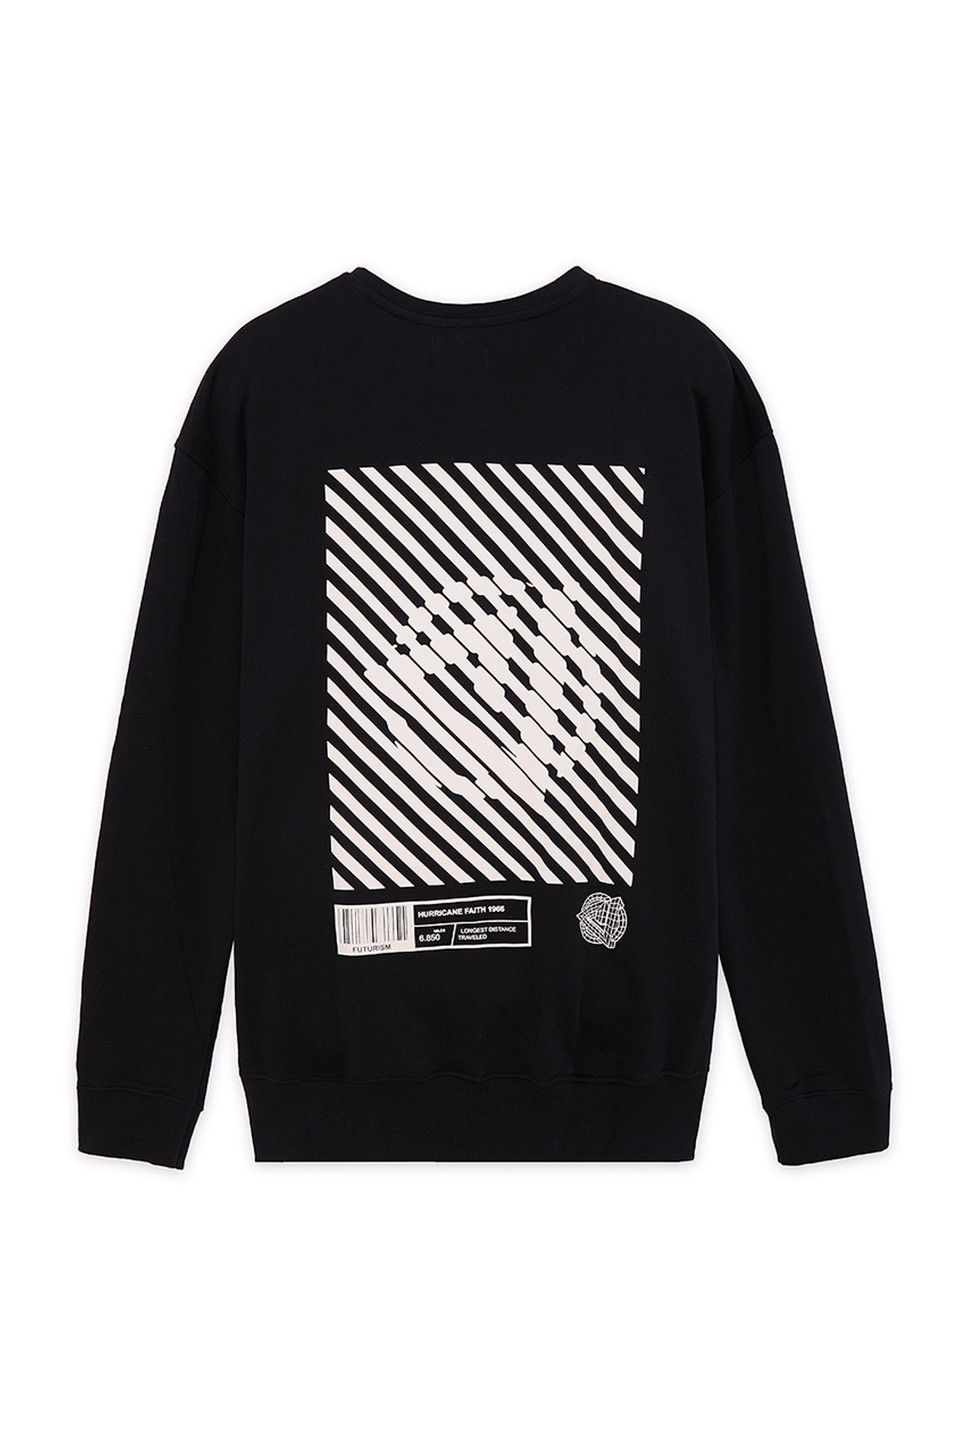 Futurism Logo Merch - Sweater - Black